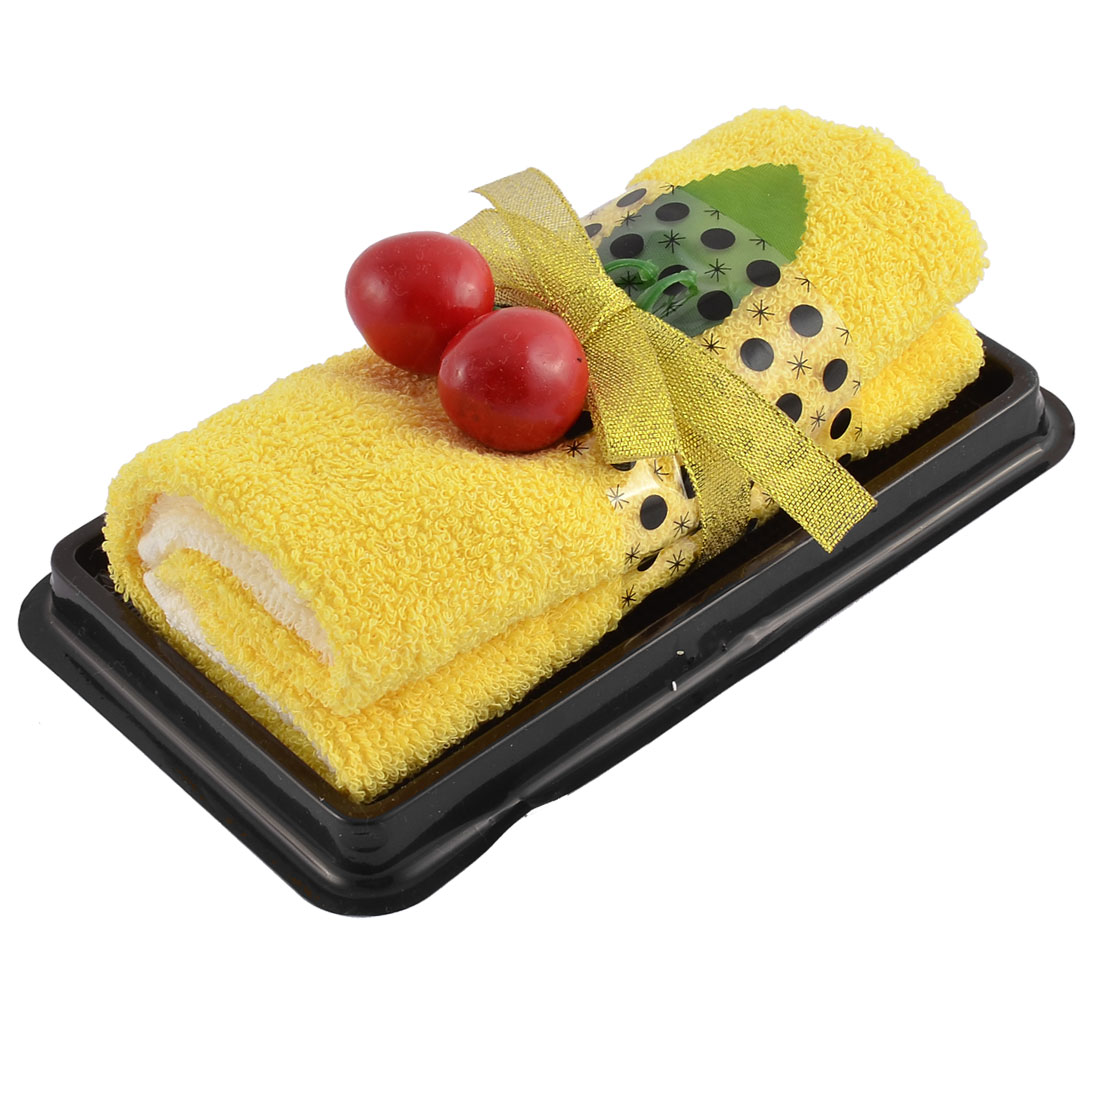 Roll Cake Towel Fake Cherry Decor Detail Washrag Washcloth Facecloth Gift Yellow